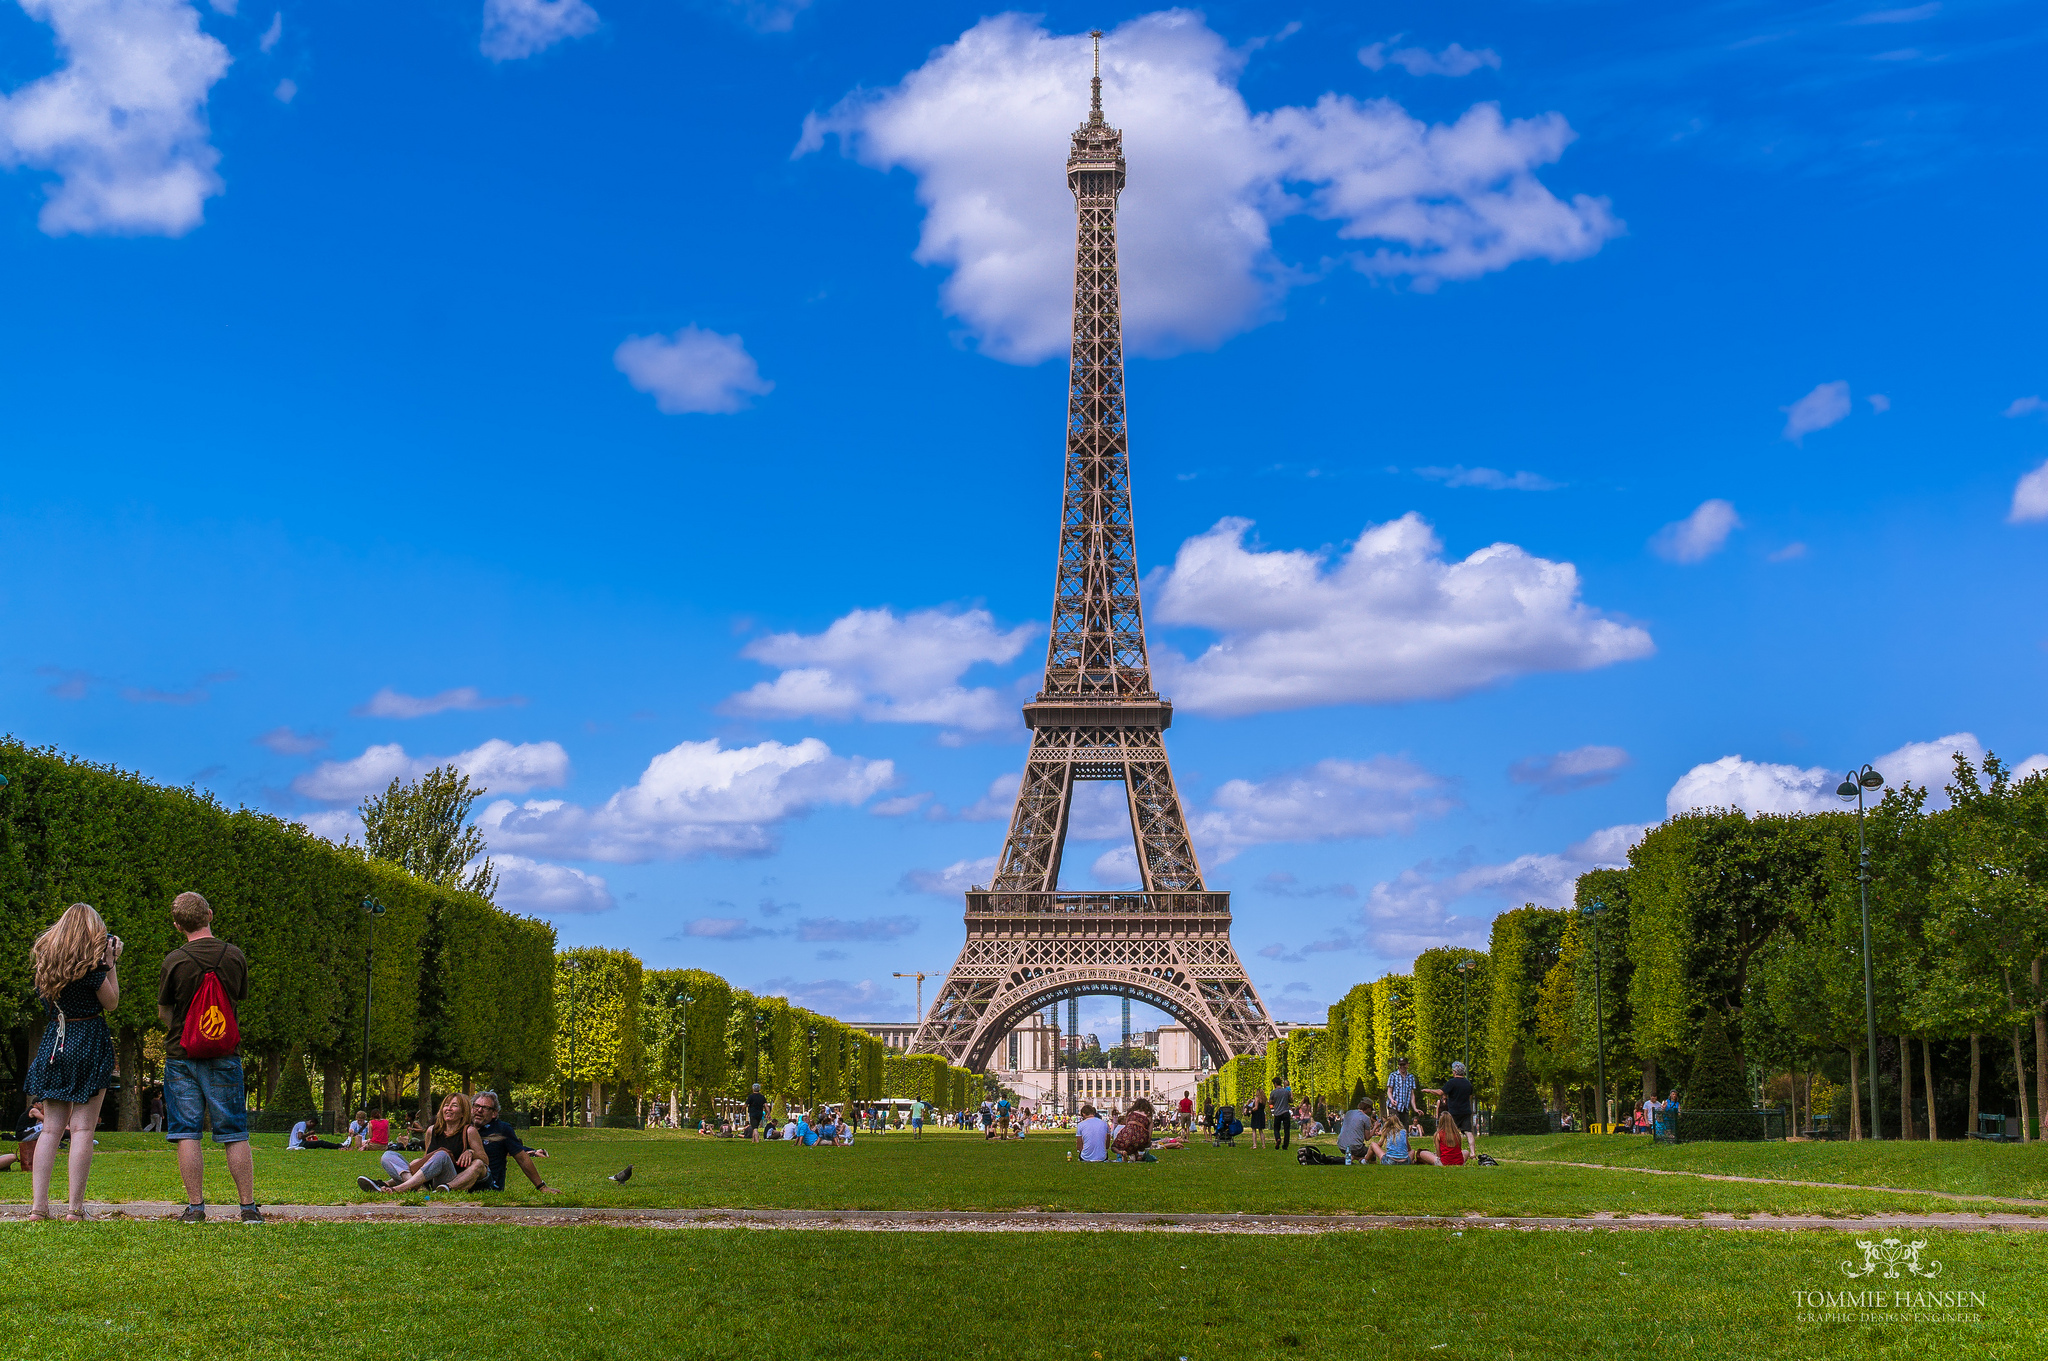 free photo: eiffel tower - scenic, romantic, paris - free download